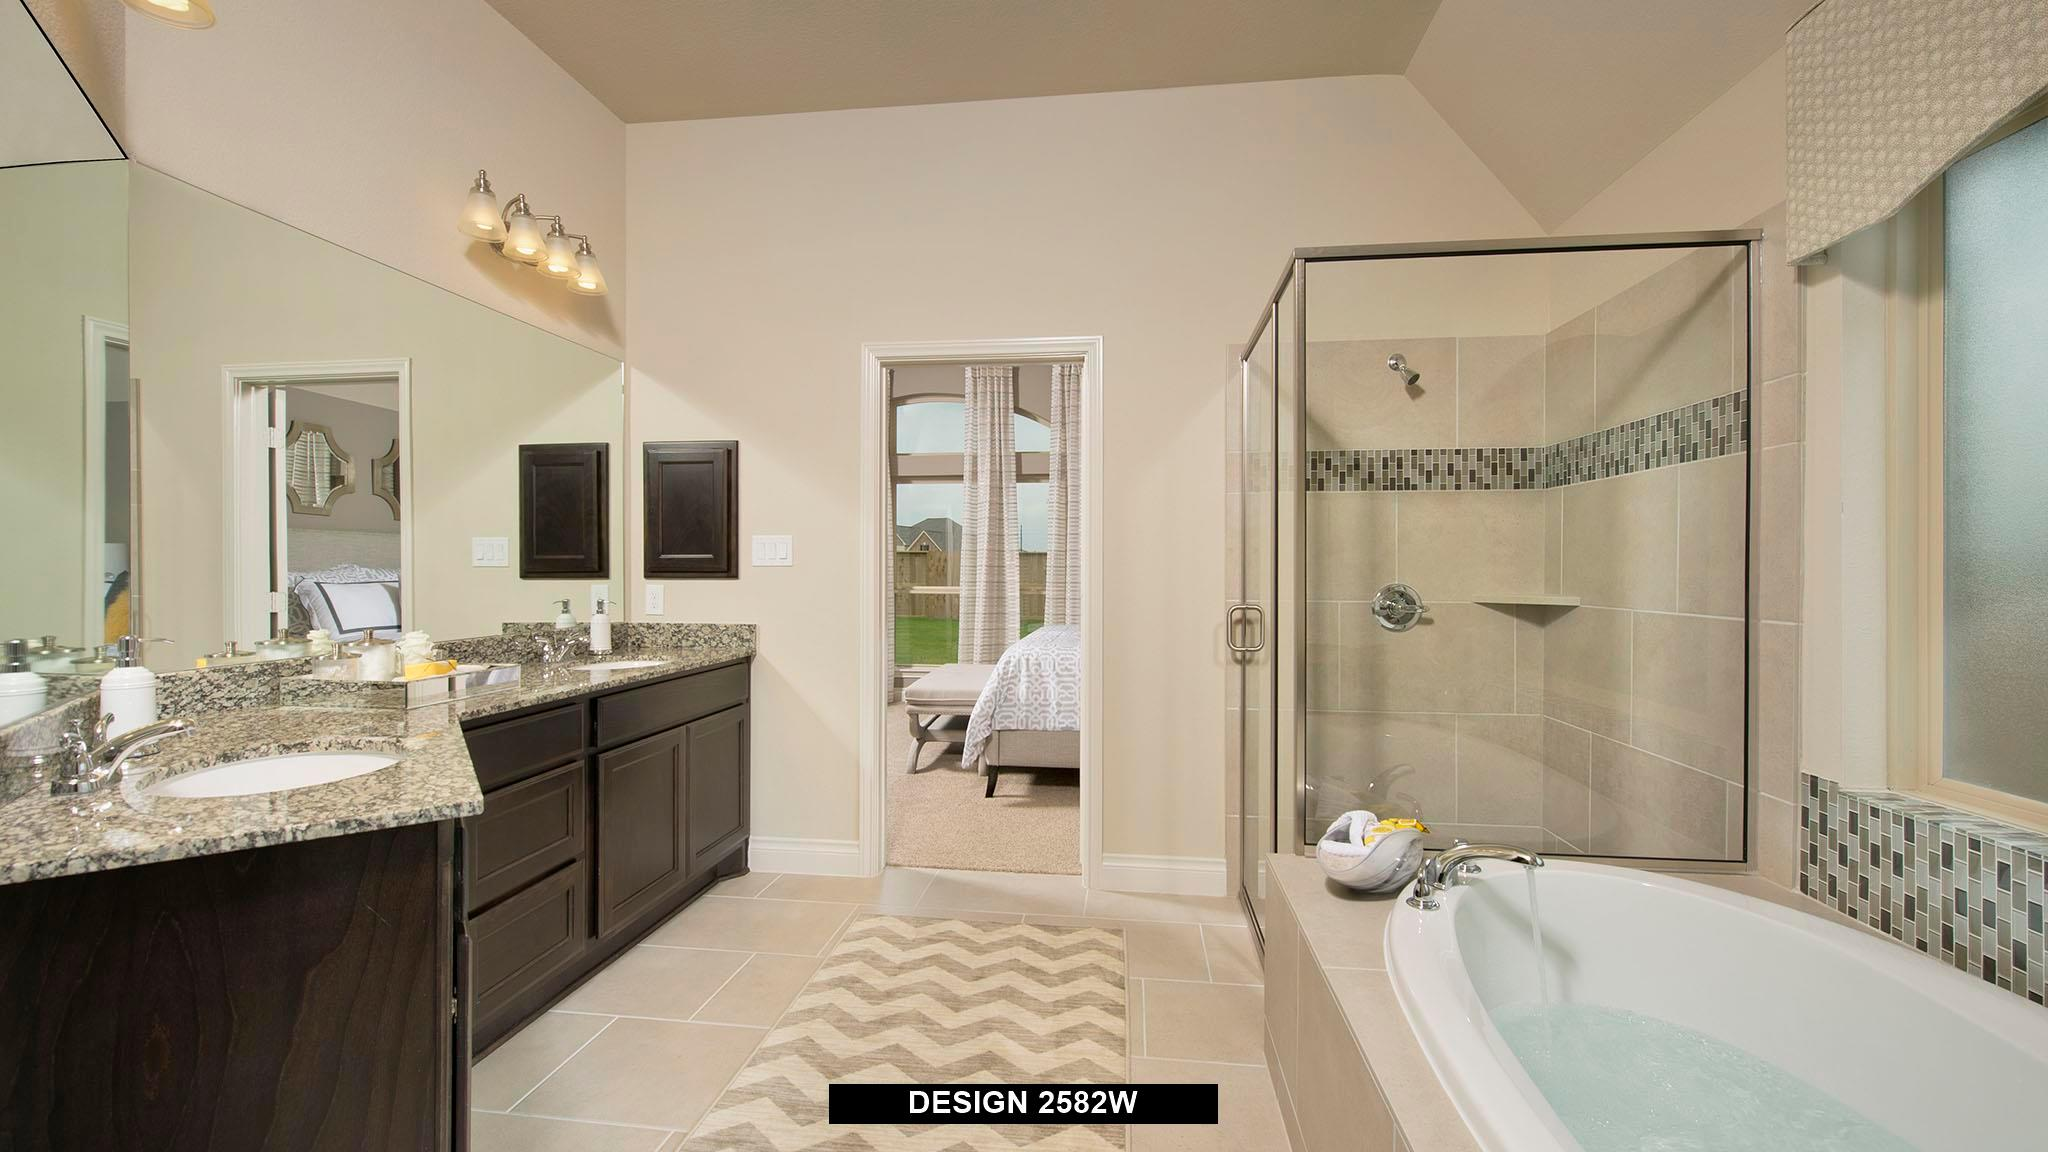 Bathroom featured in the 2582W By Perry Homes in Dallas, TX